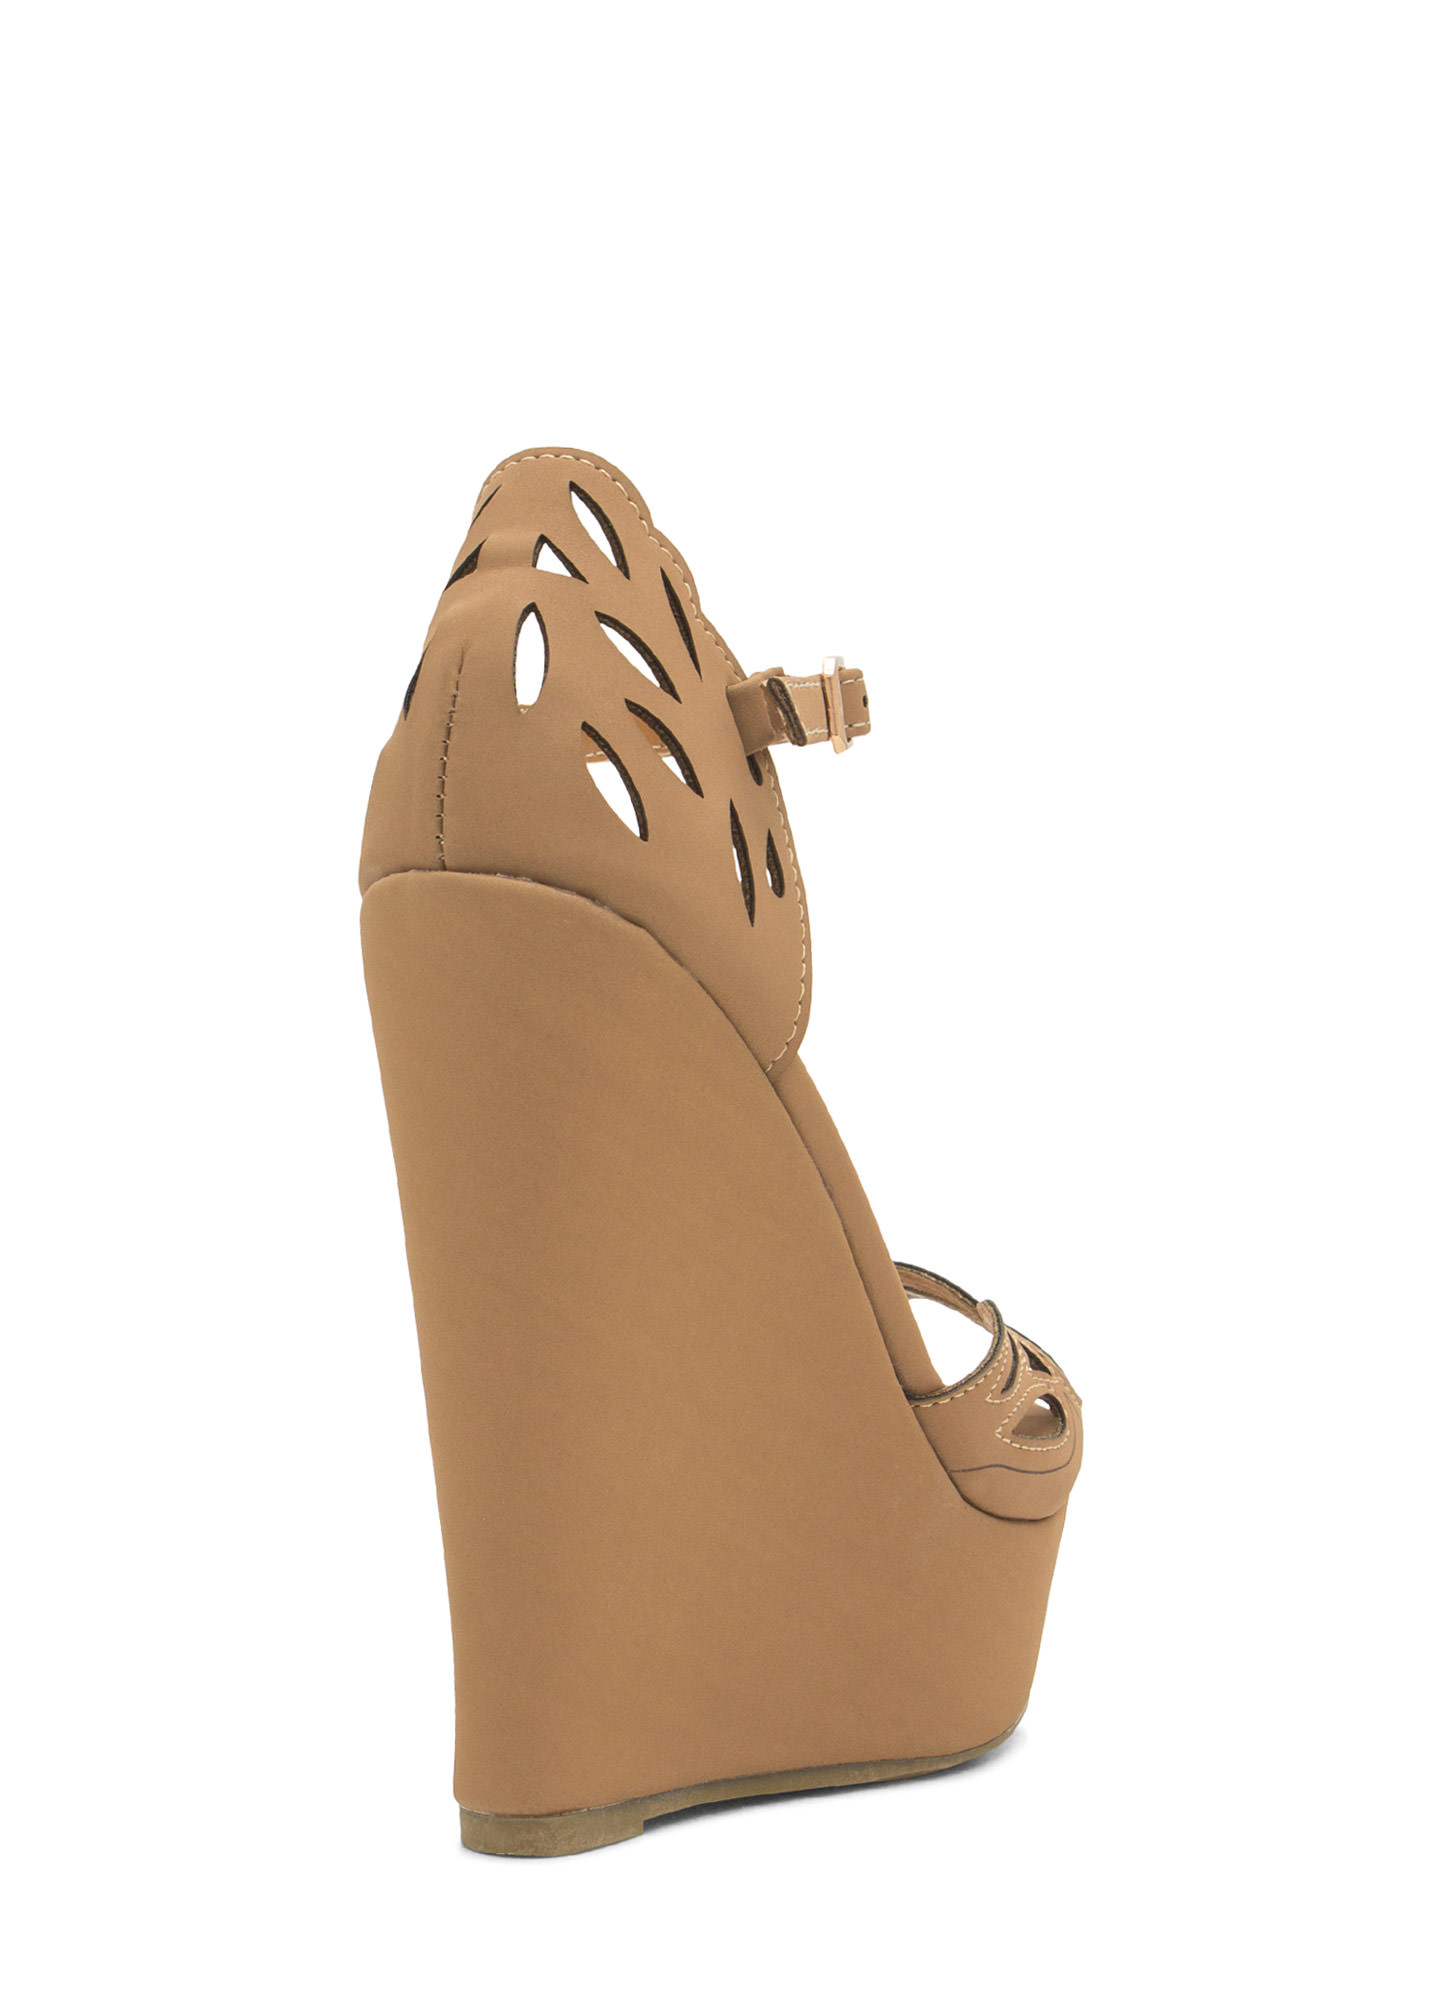 Butterfly Wings Cut-Out Wedges TAN